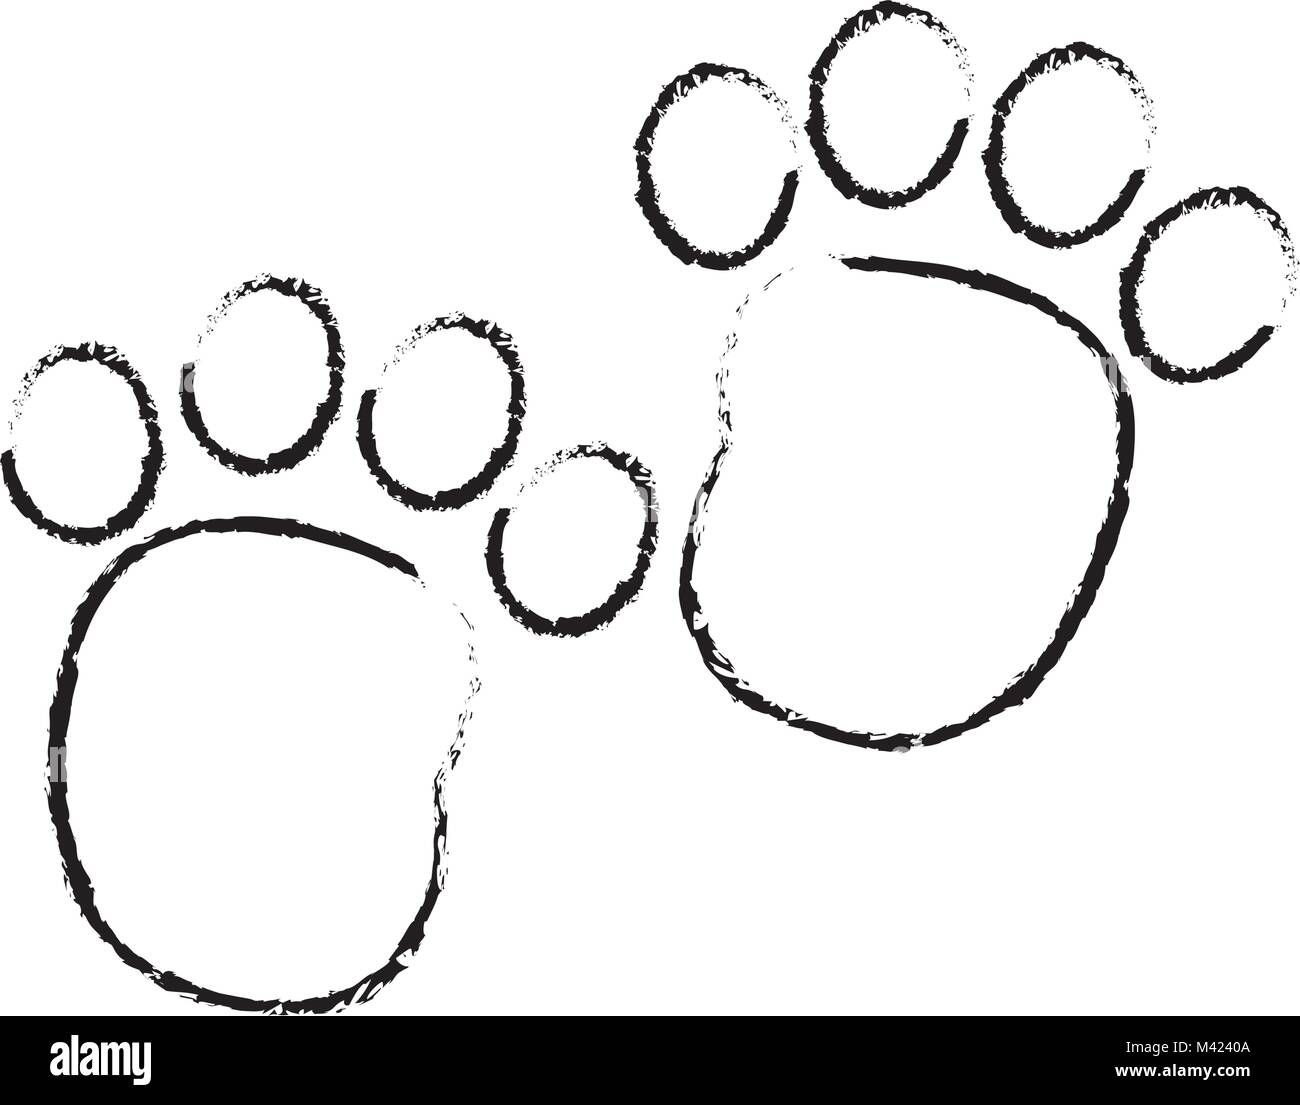 grunge human footprint with toes mark sign - Stock Vector